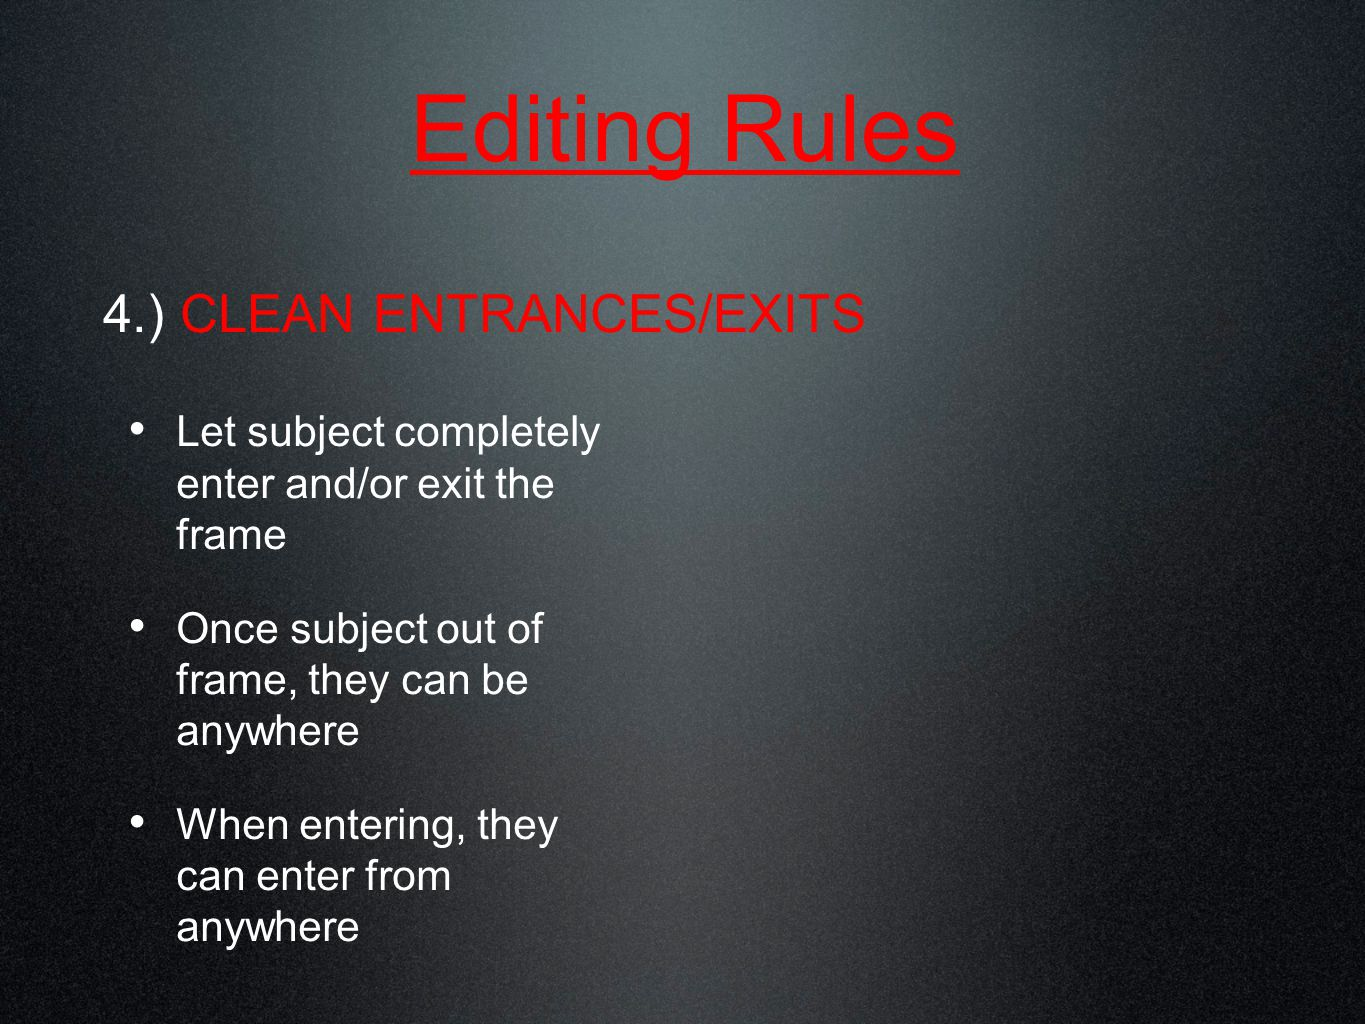 Editing Rules 4.) CLEAN ENTRANCES/EXITS Let subject completely enter and/or exit the frame Once subject out of frame, they can be anywhere When entering, they can enter from anywhere